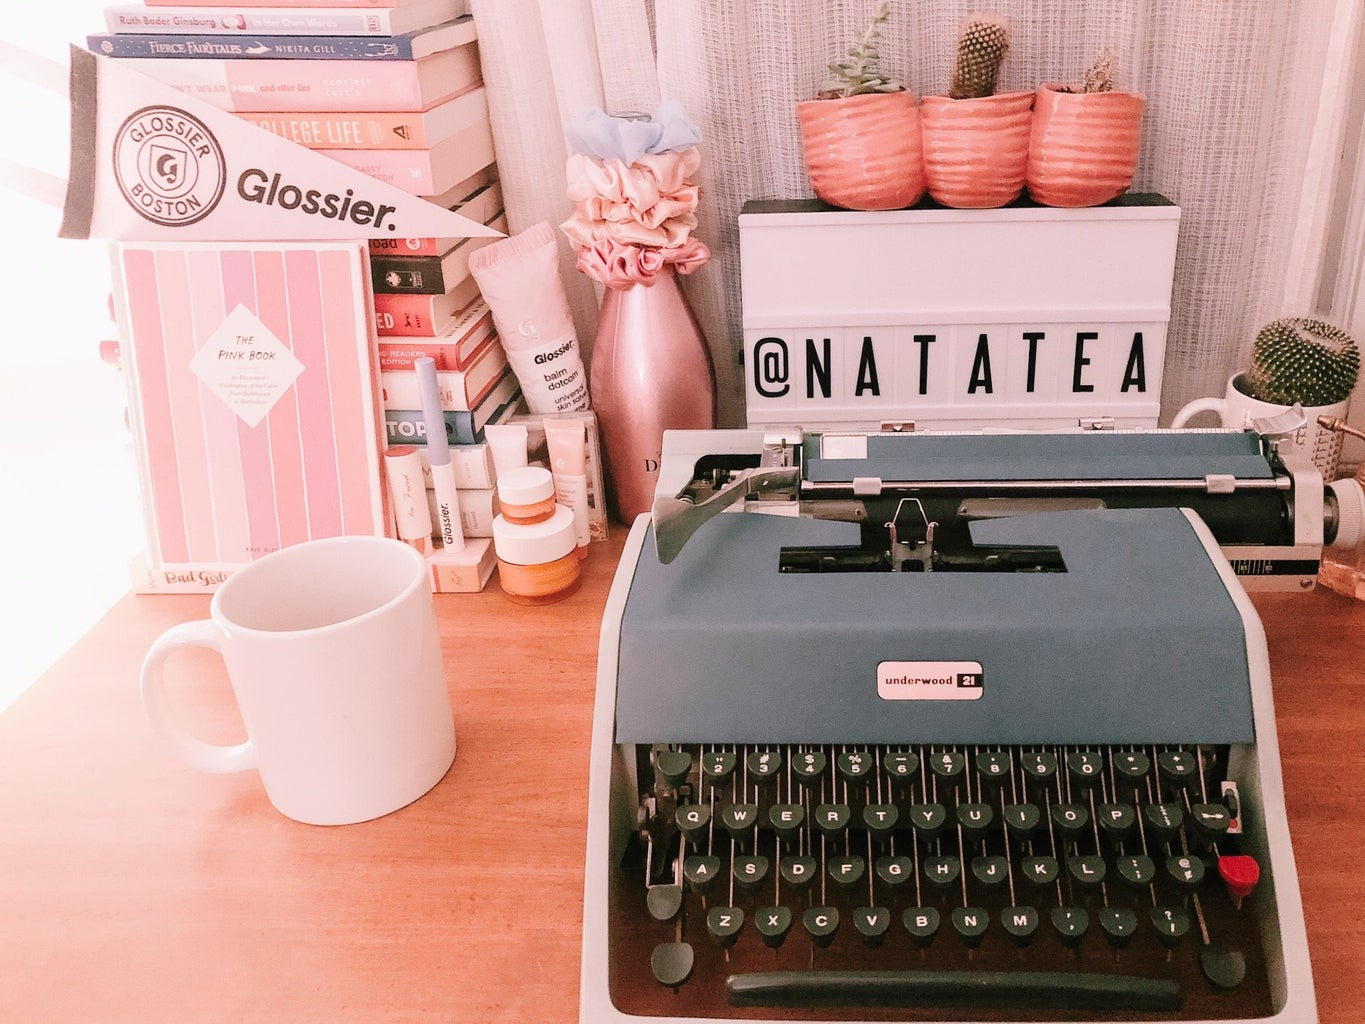 interior design of bedroom and desk with a typewriter